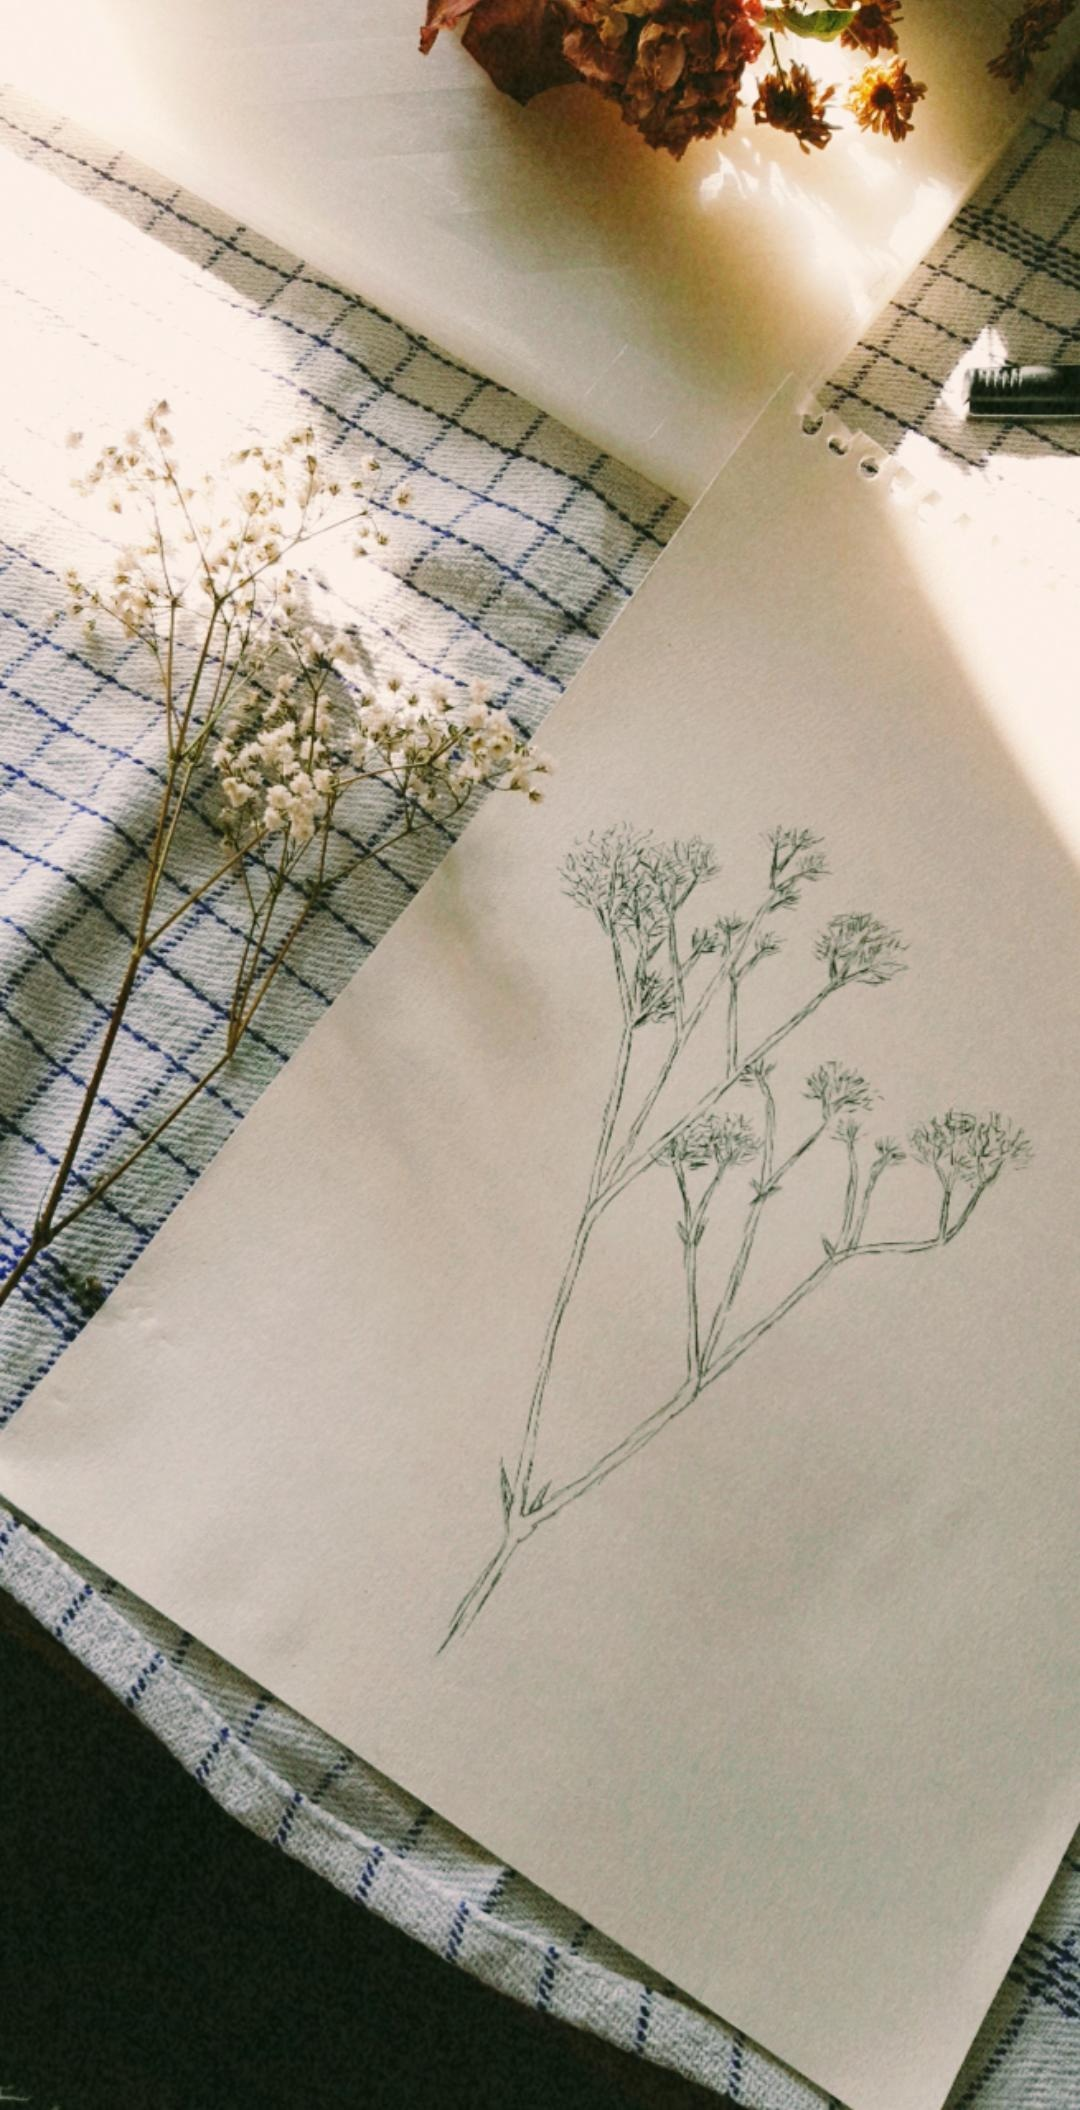 my drawing of dried flowers